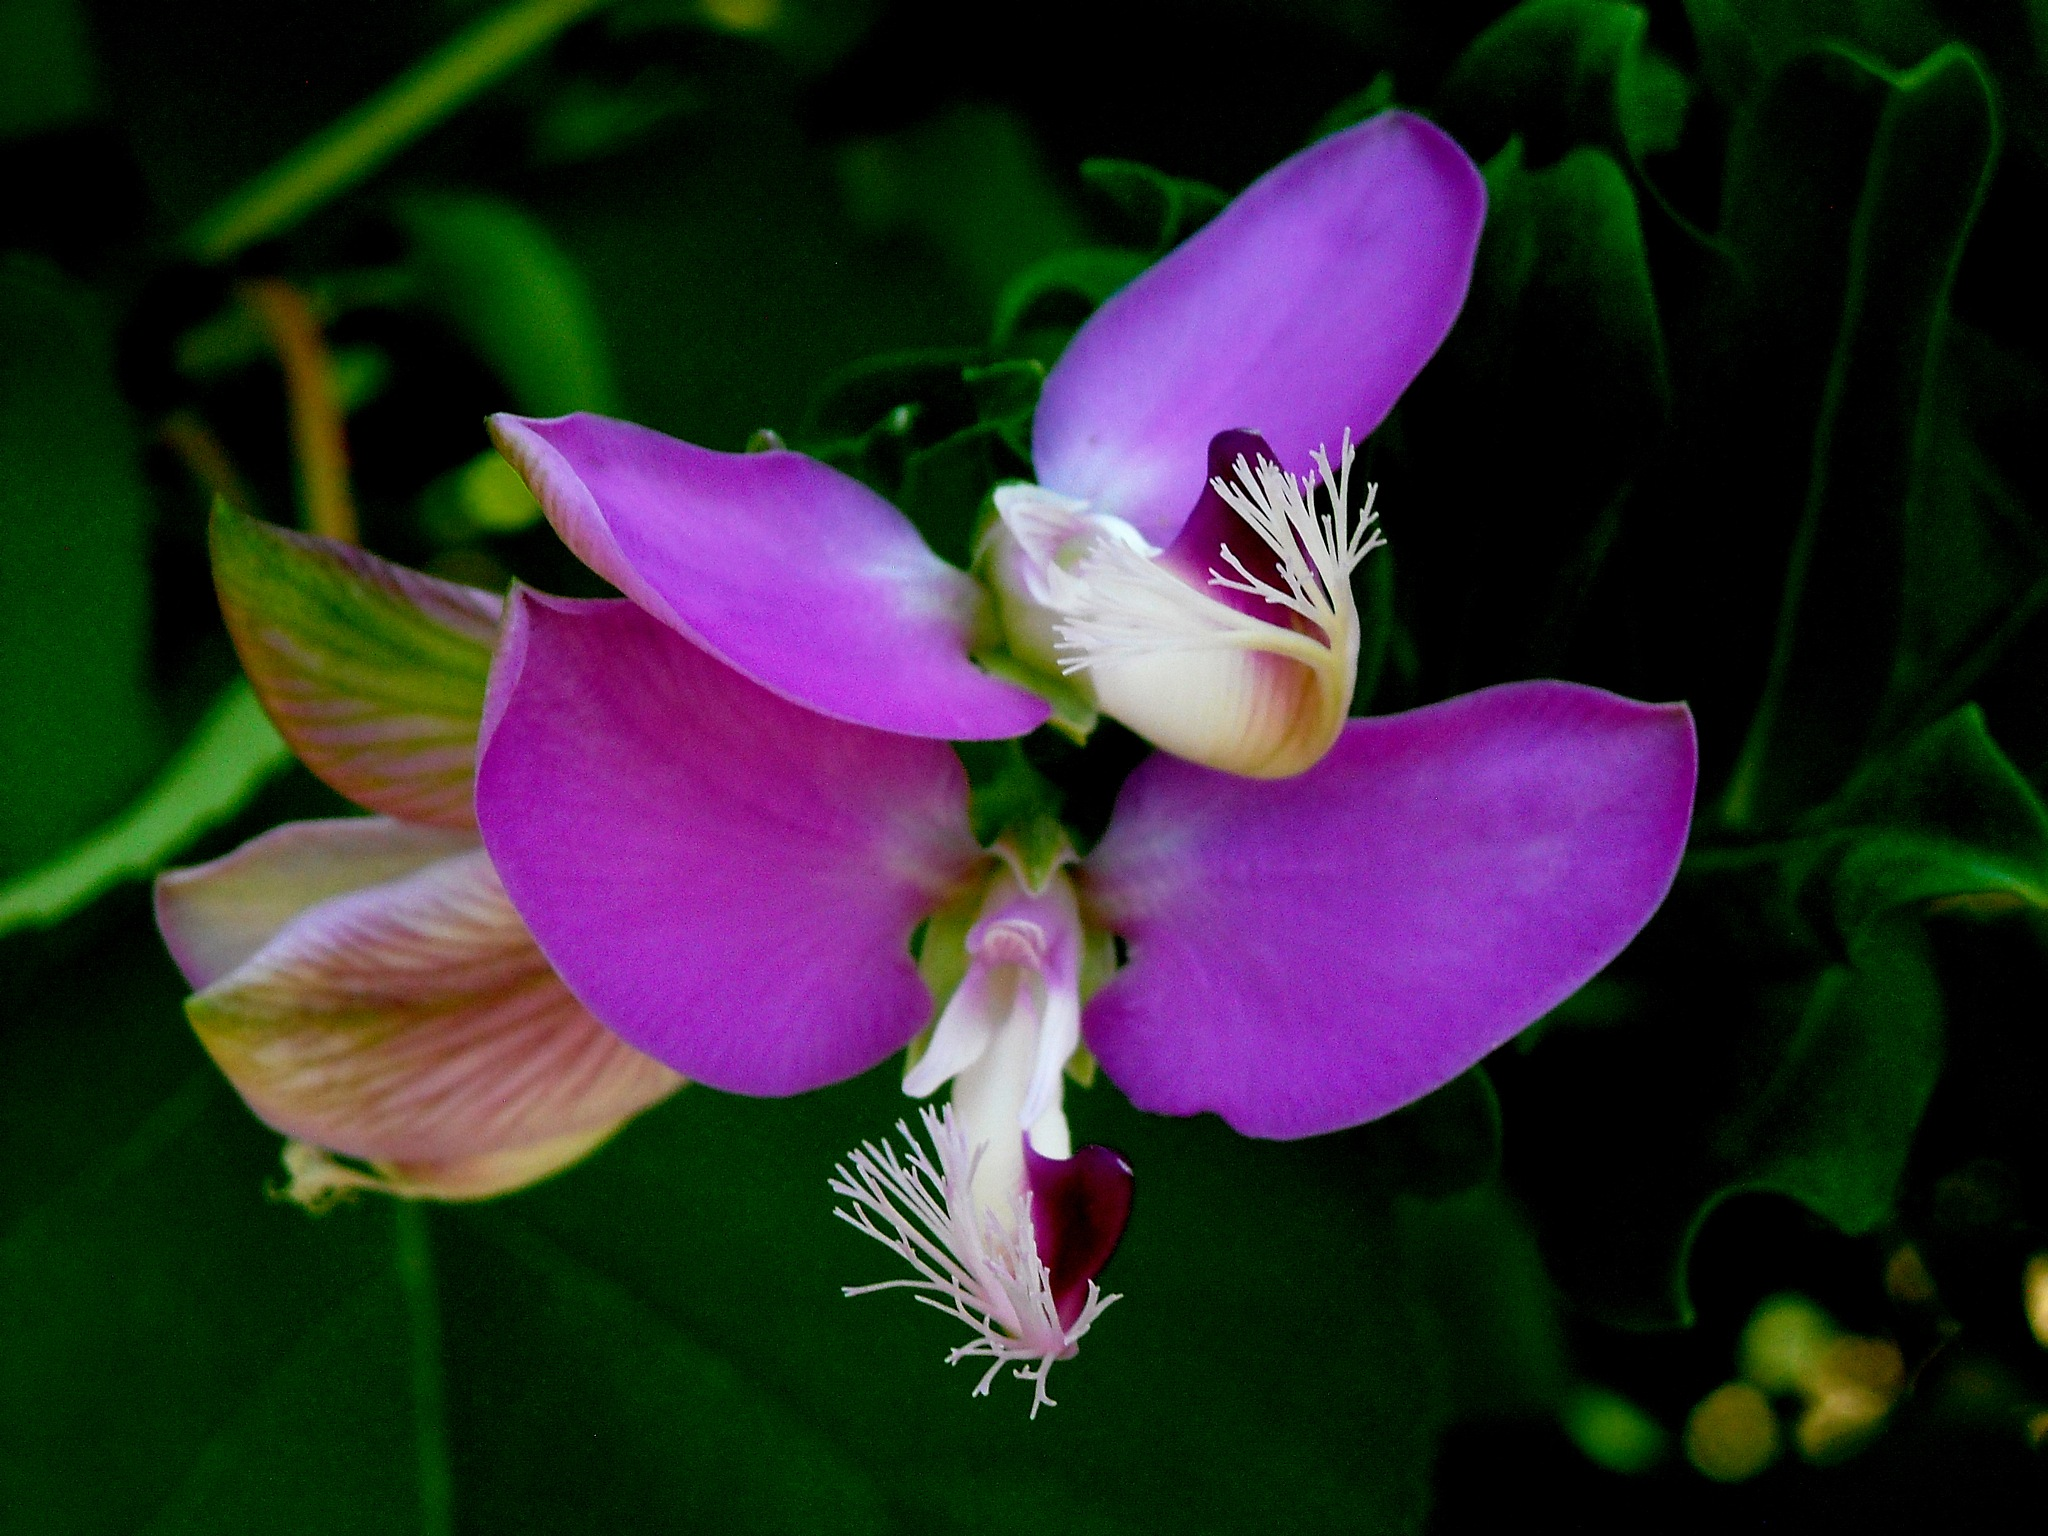 POLYGALA FLOVER, CLOSE UP by Akin Saner